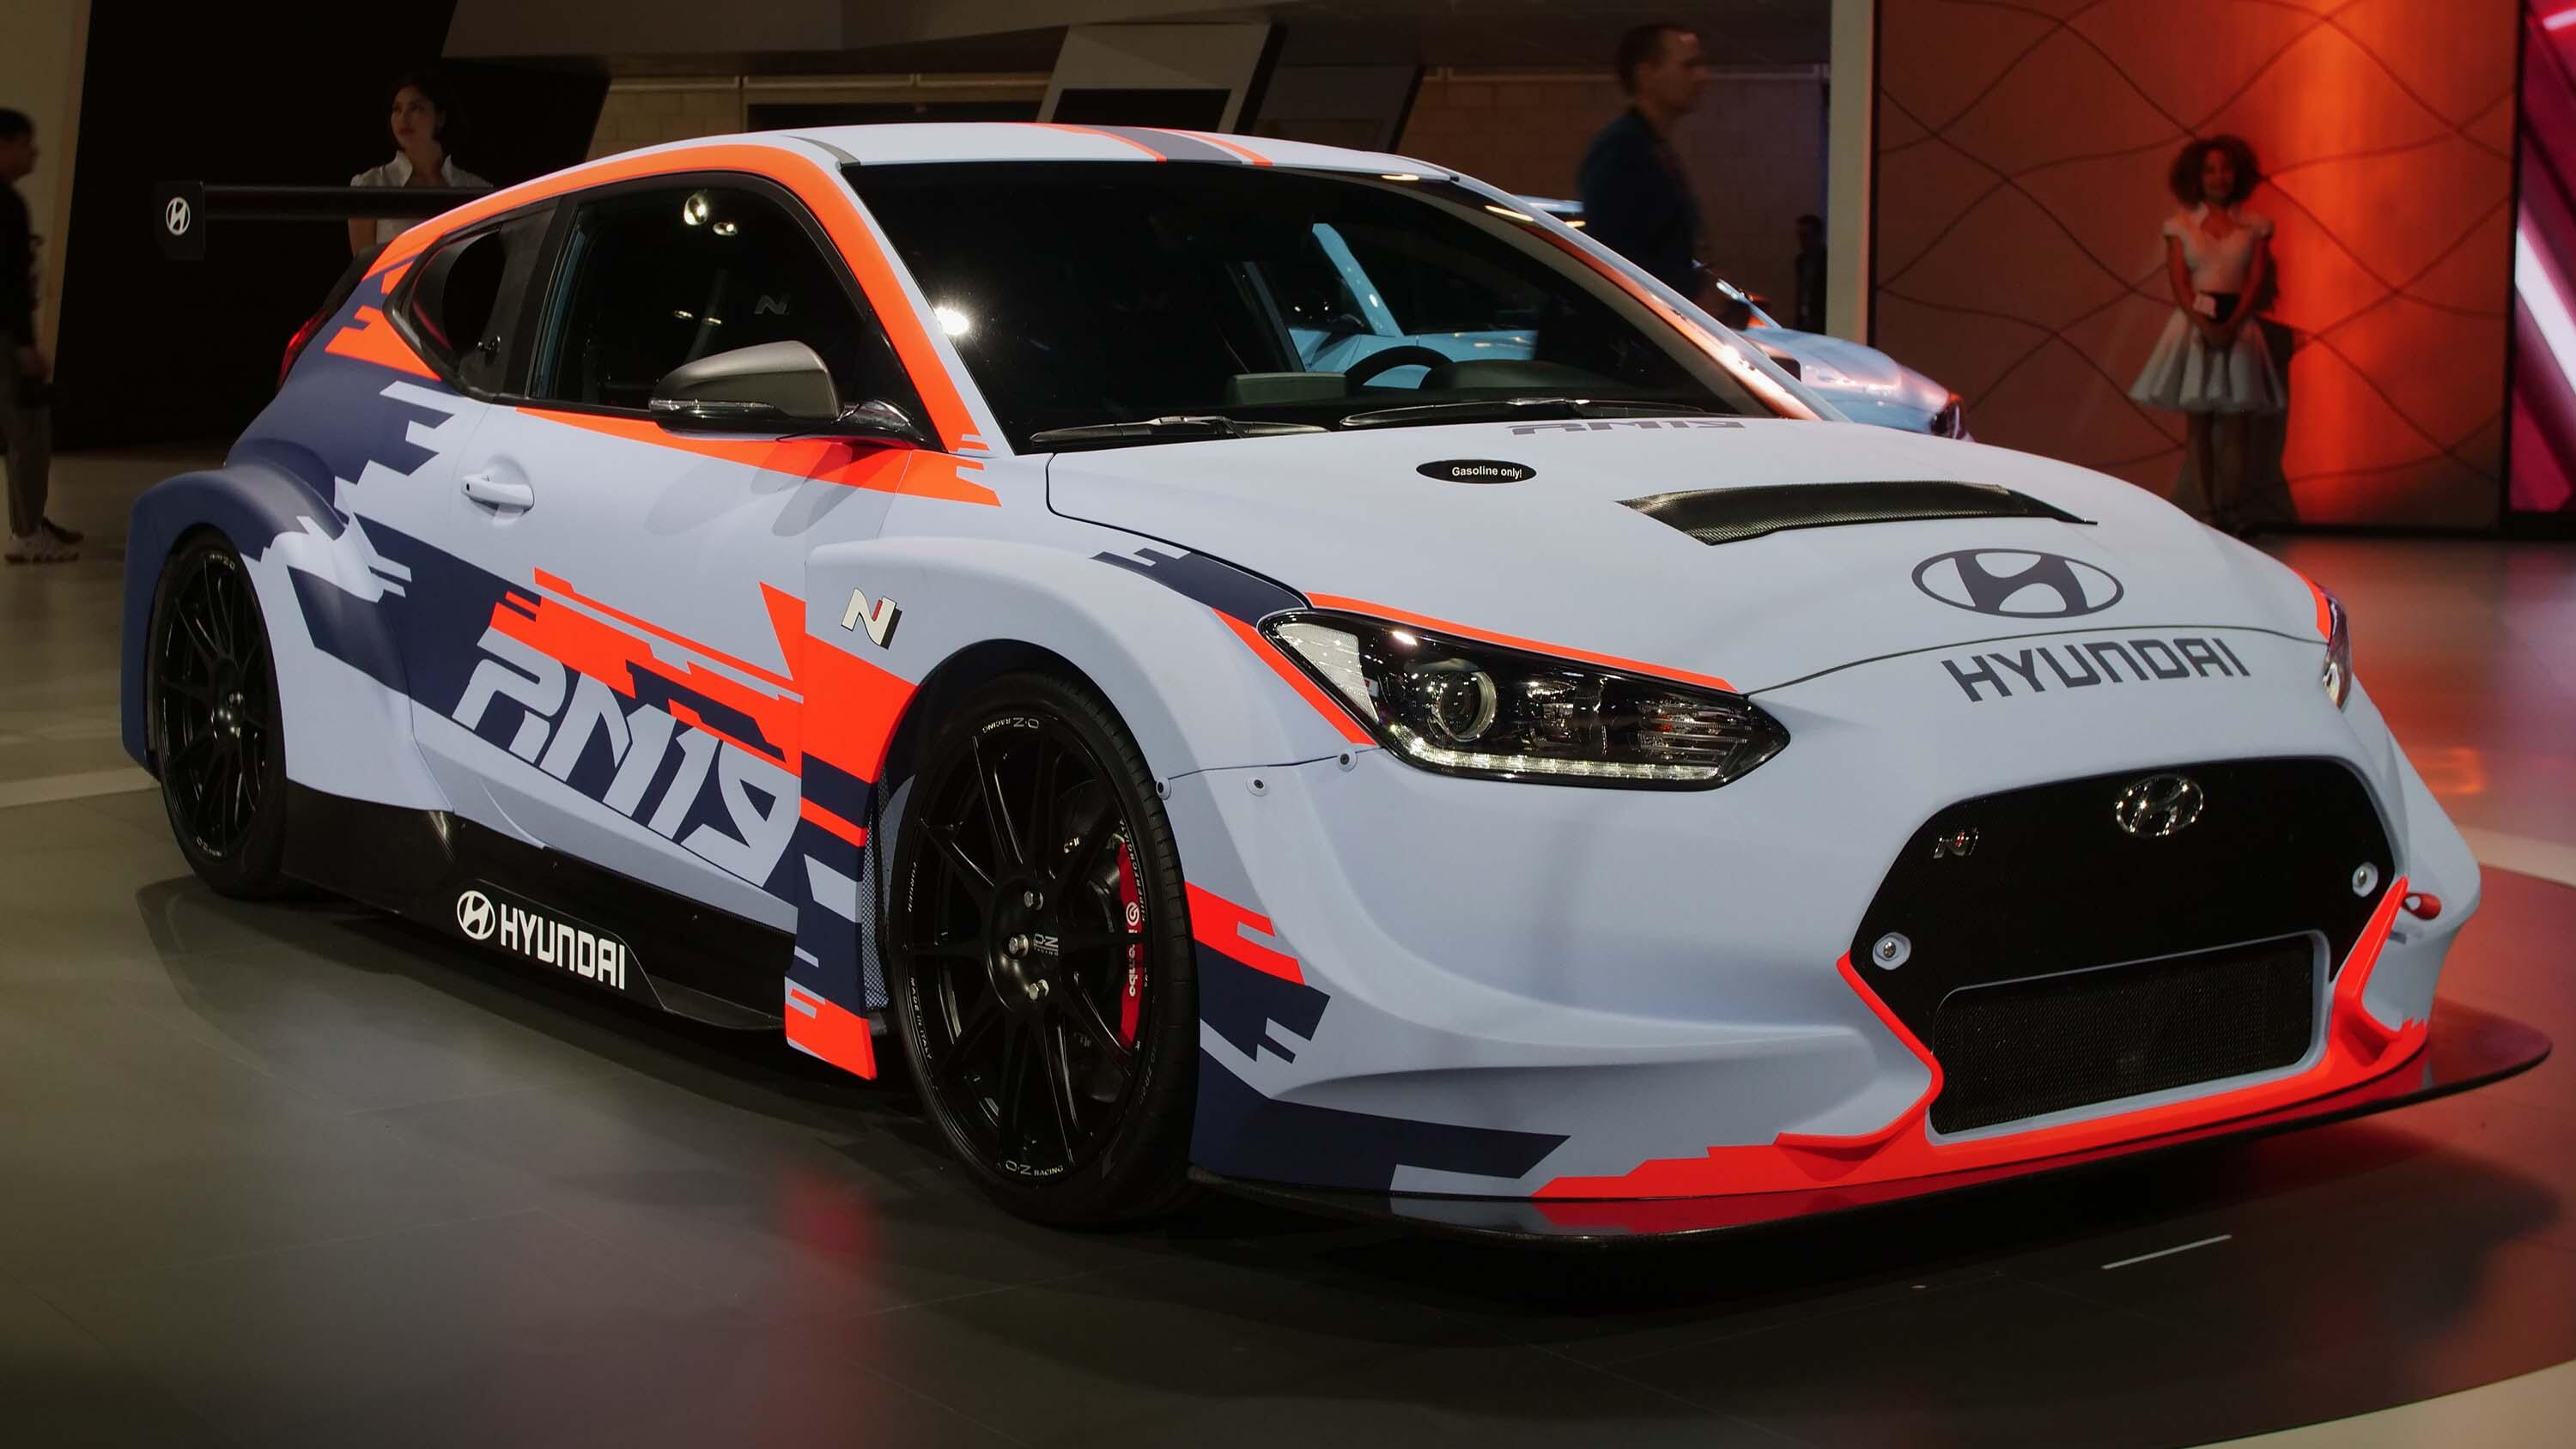 Video: Hyundai shows off the next-level Veloster in the RM19 in Los Angeles